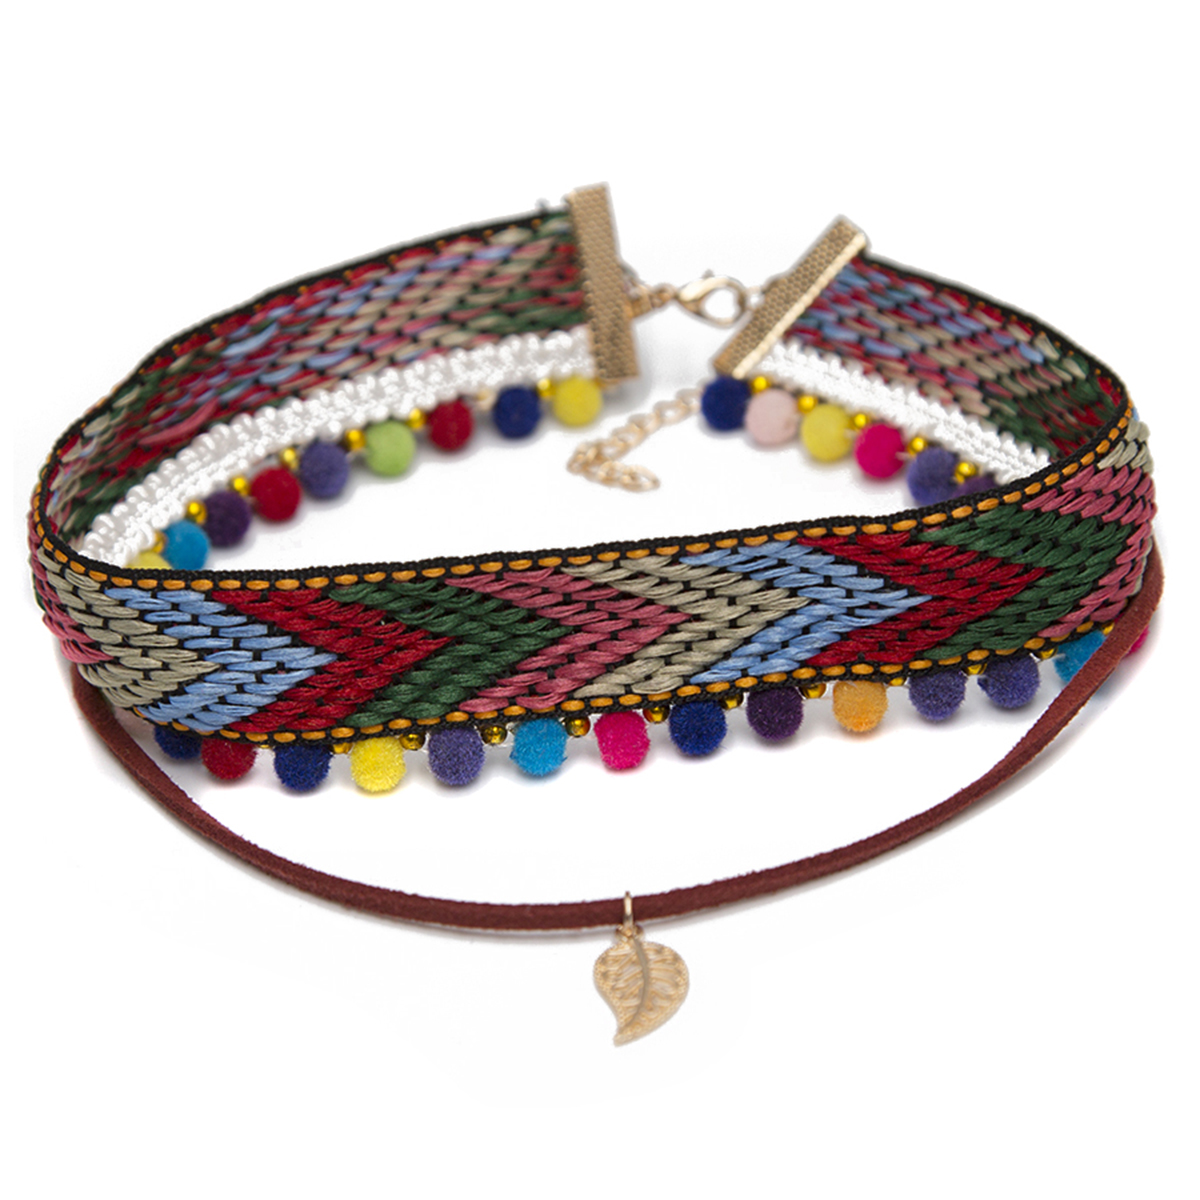 Ethnic Women Chain Leaf Pendant Necklaces Bohemian Woven Cloth Leather Rope Collar Choker Necklace Femme Jewellery Shellahrd ...